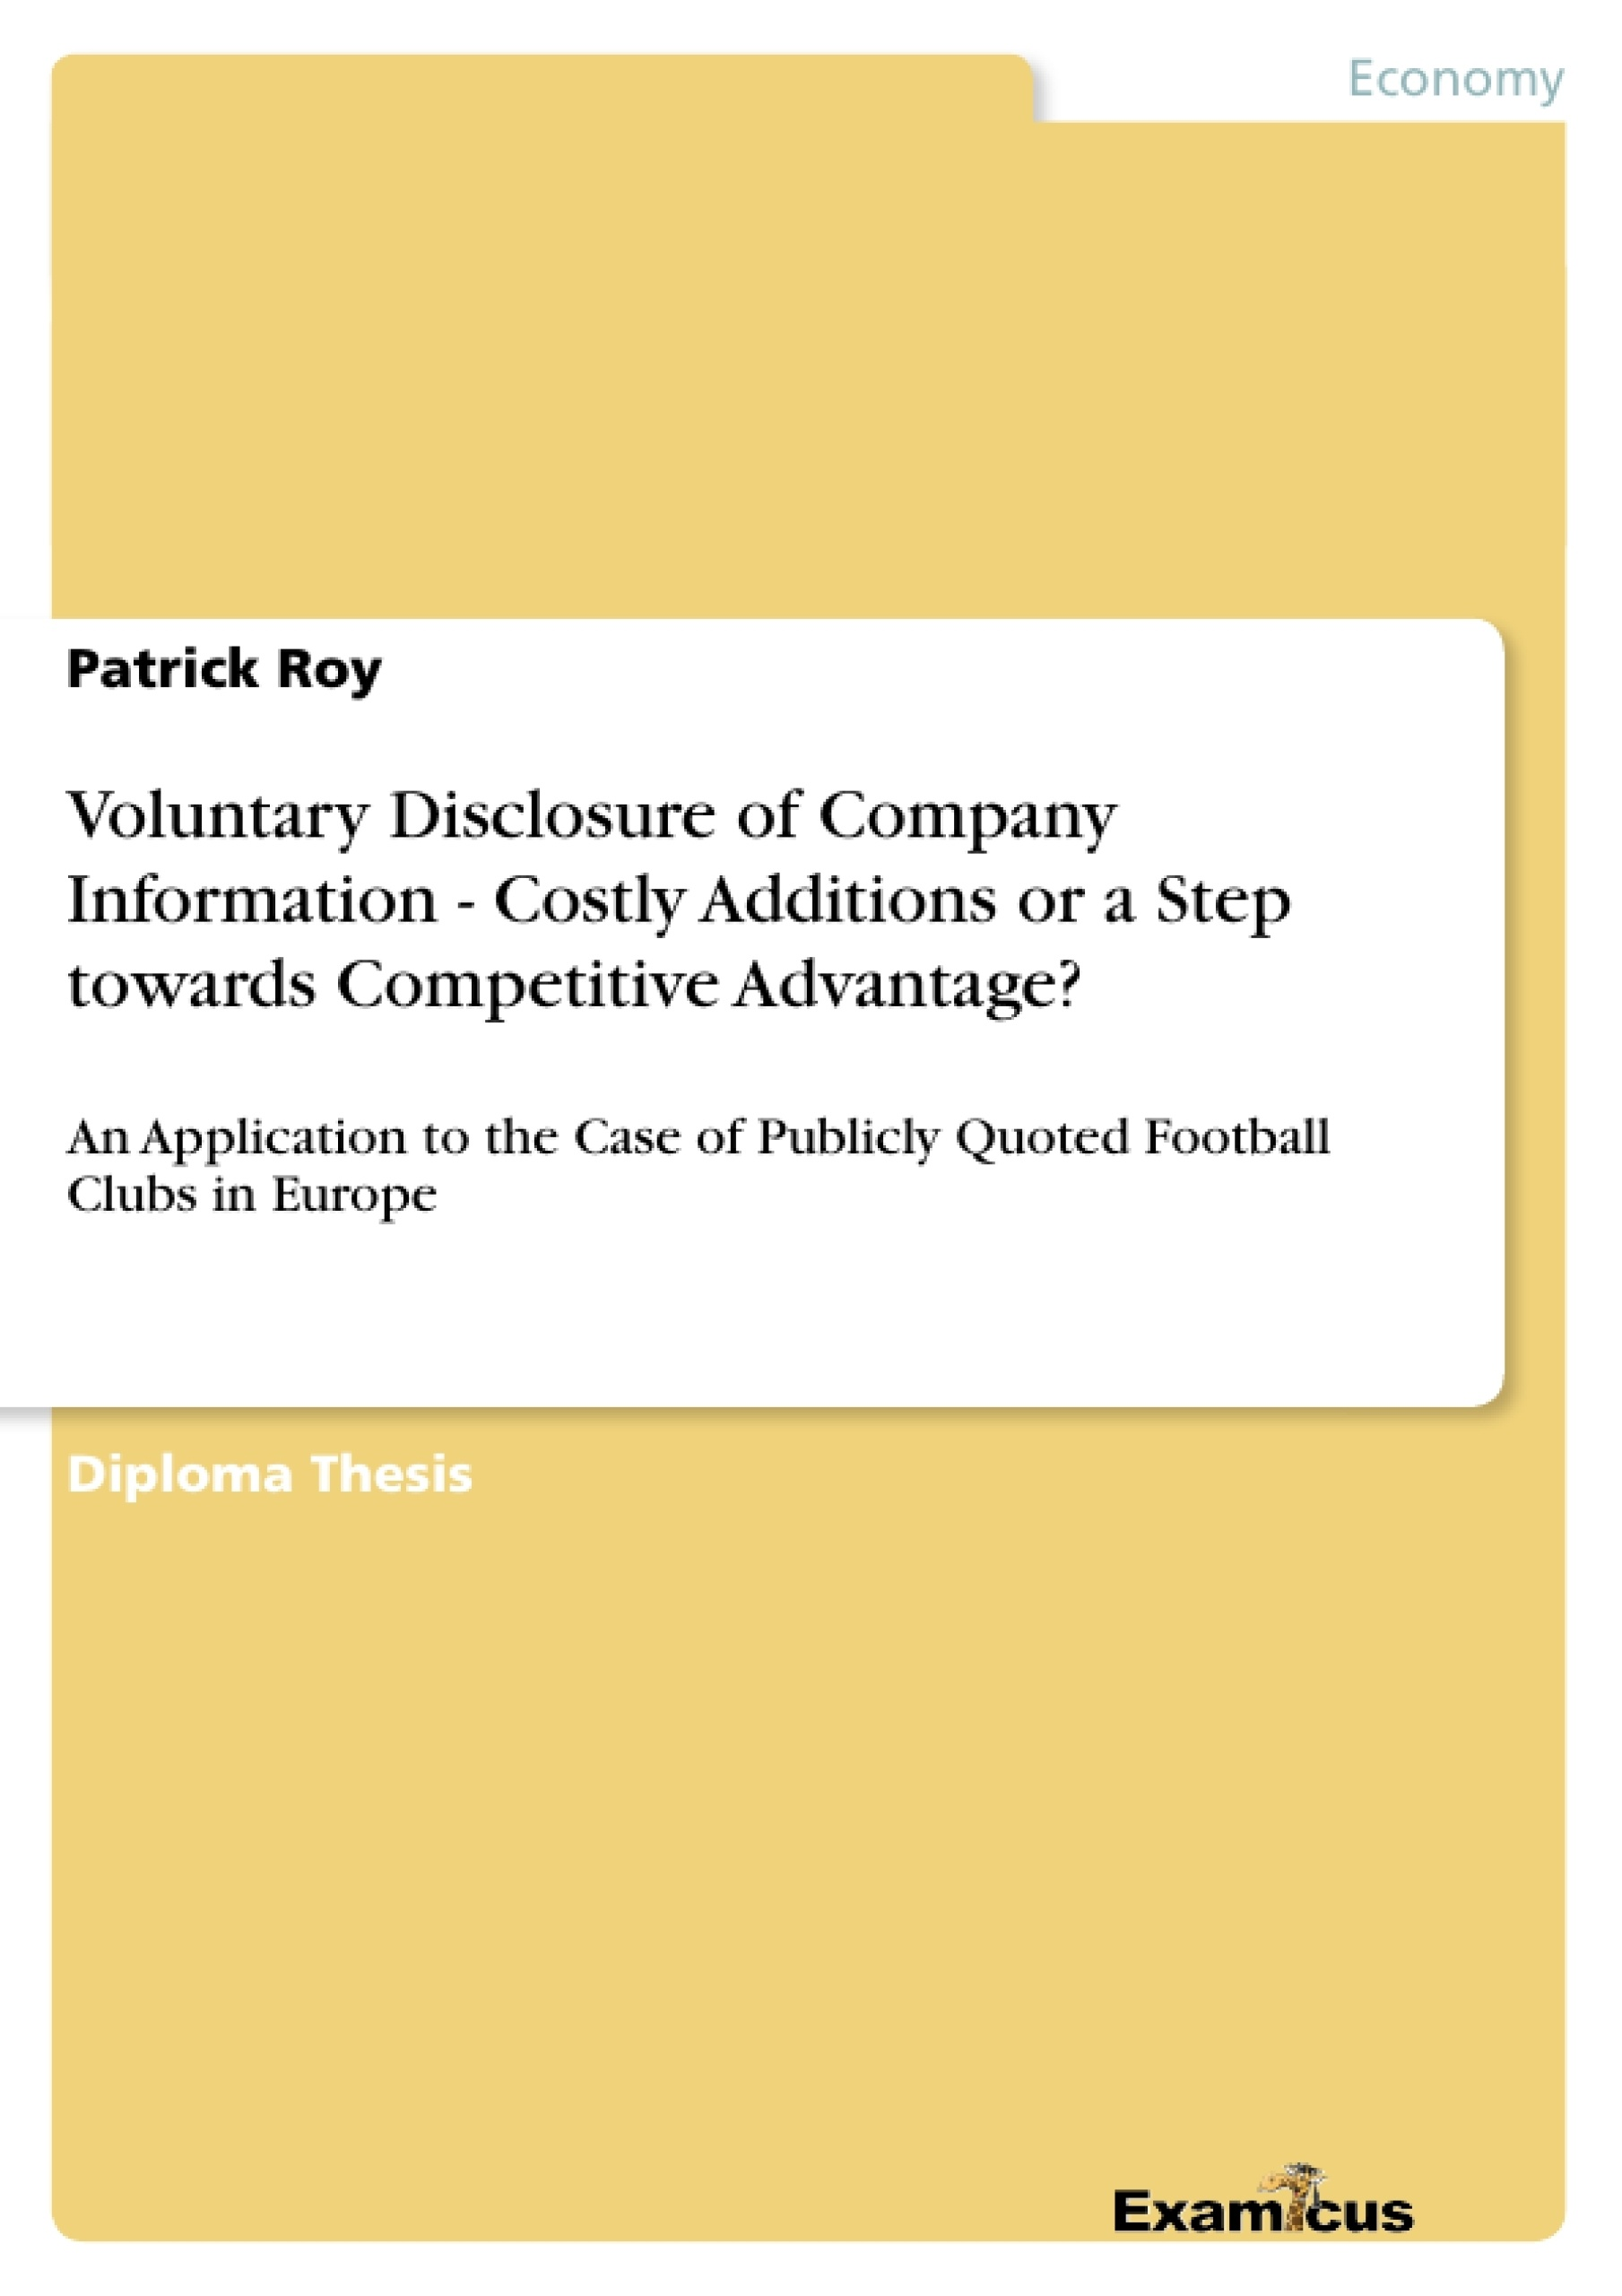 Title: Voluntary Disclosure of Company Information - Costly Additions or a Step towards Competitive Advantage?